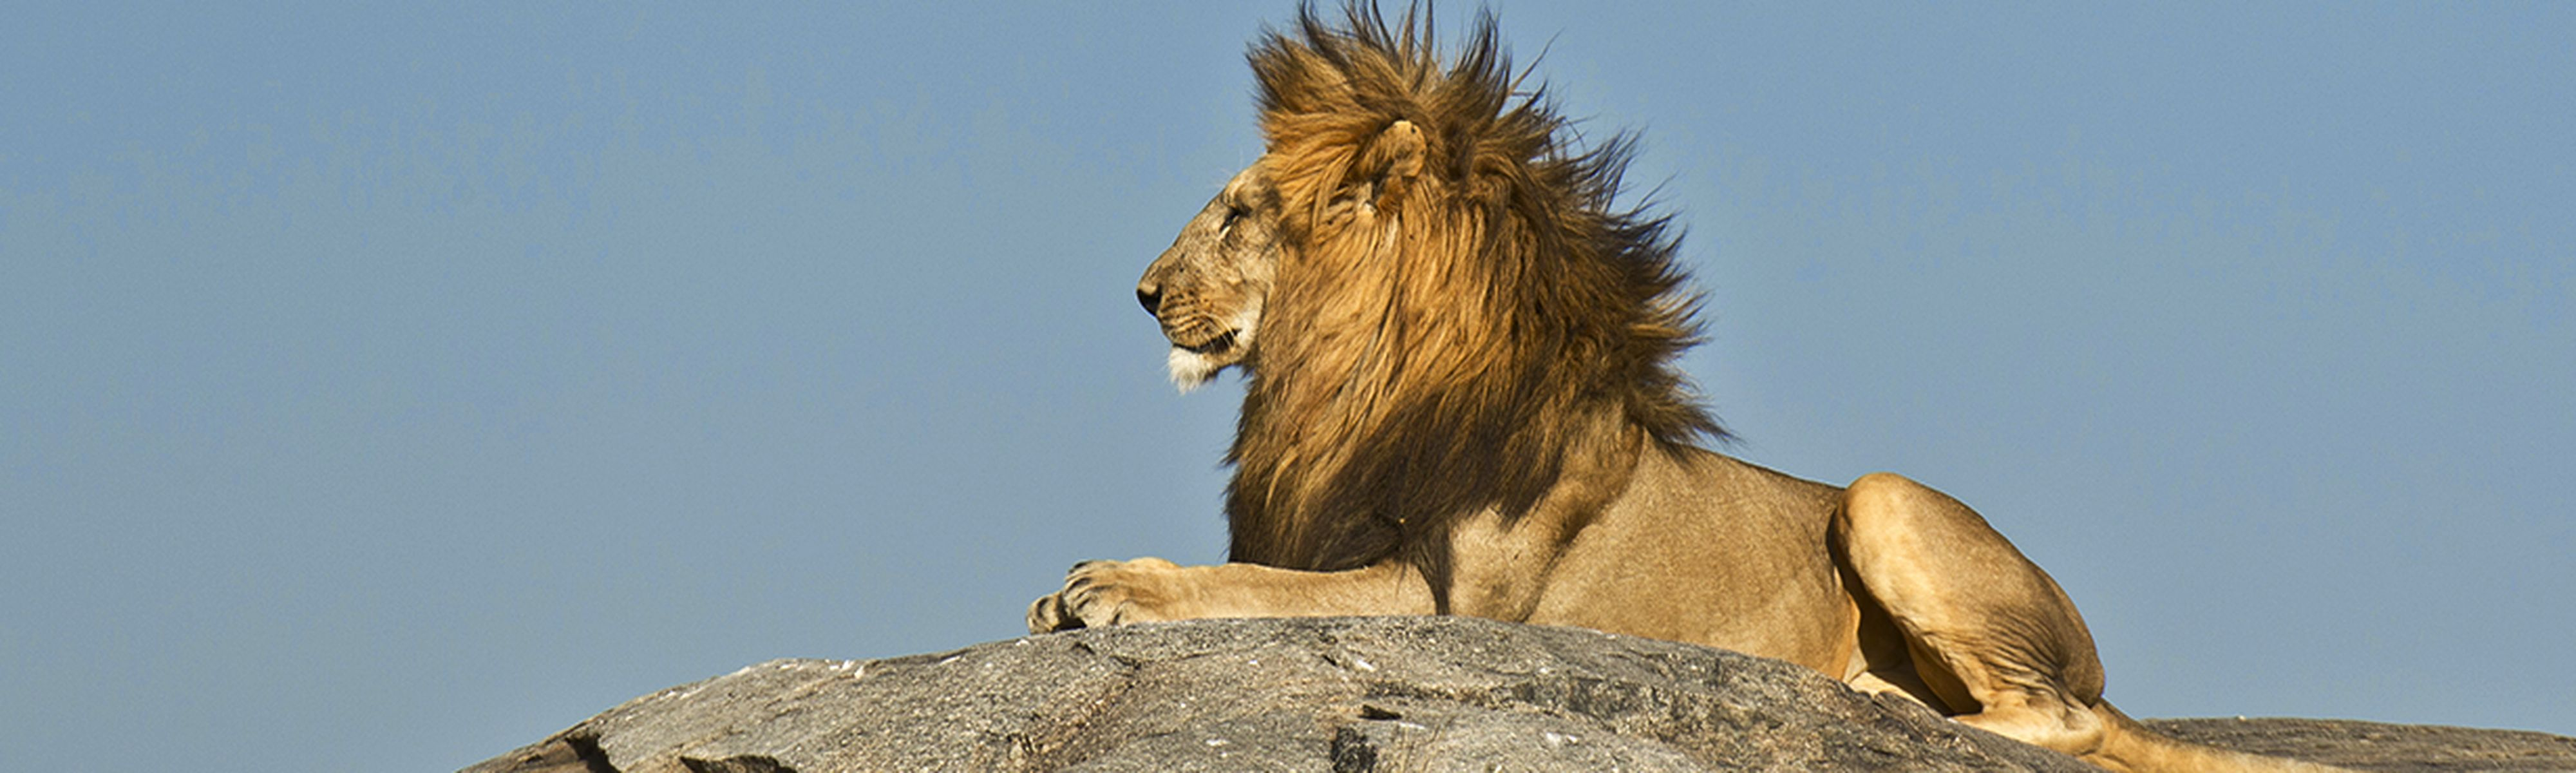 profile view of male lion sitting on rock in